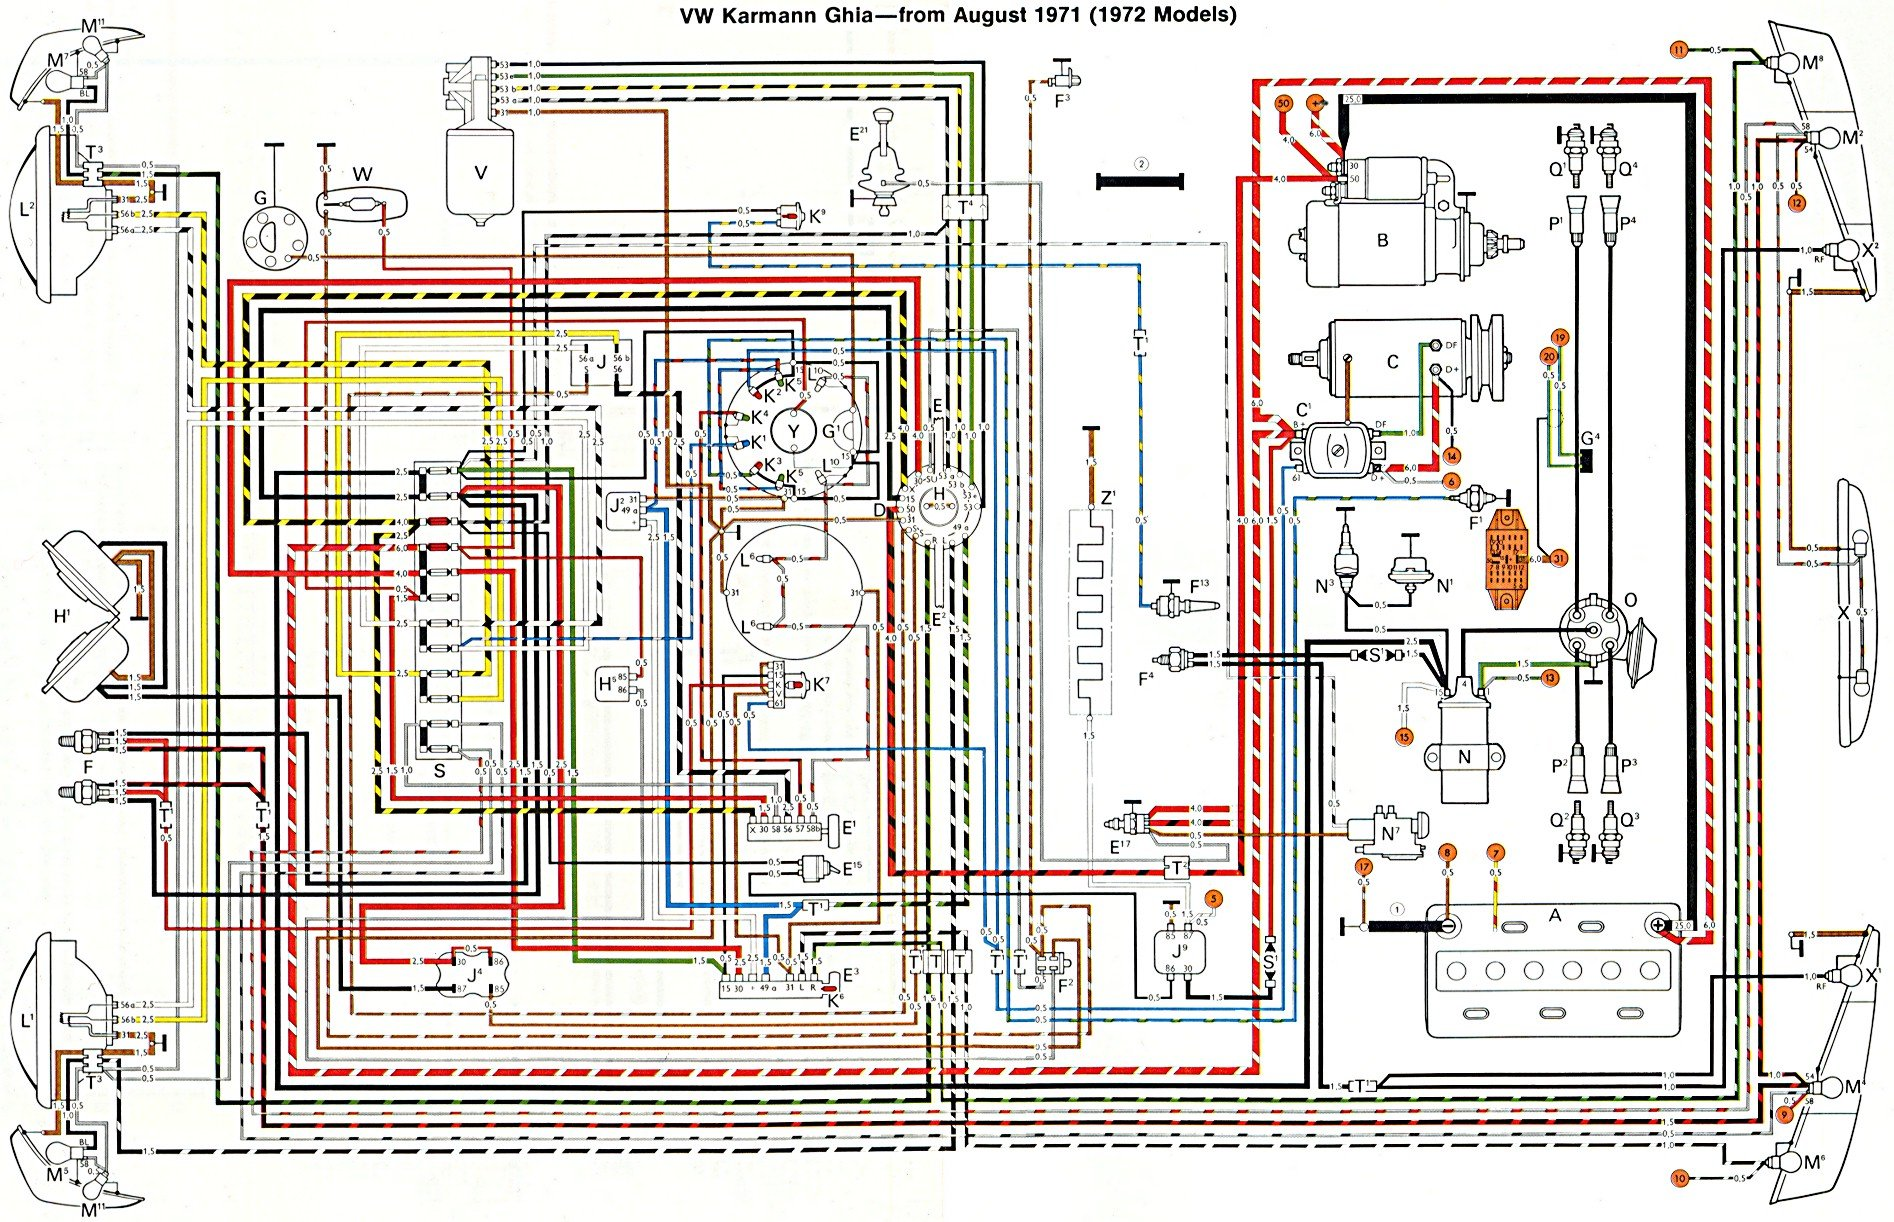 72ghia thesamba com karmann ghia wiring diagrams 1965 vw bus wiring harness at cos-gaming.co